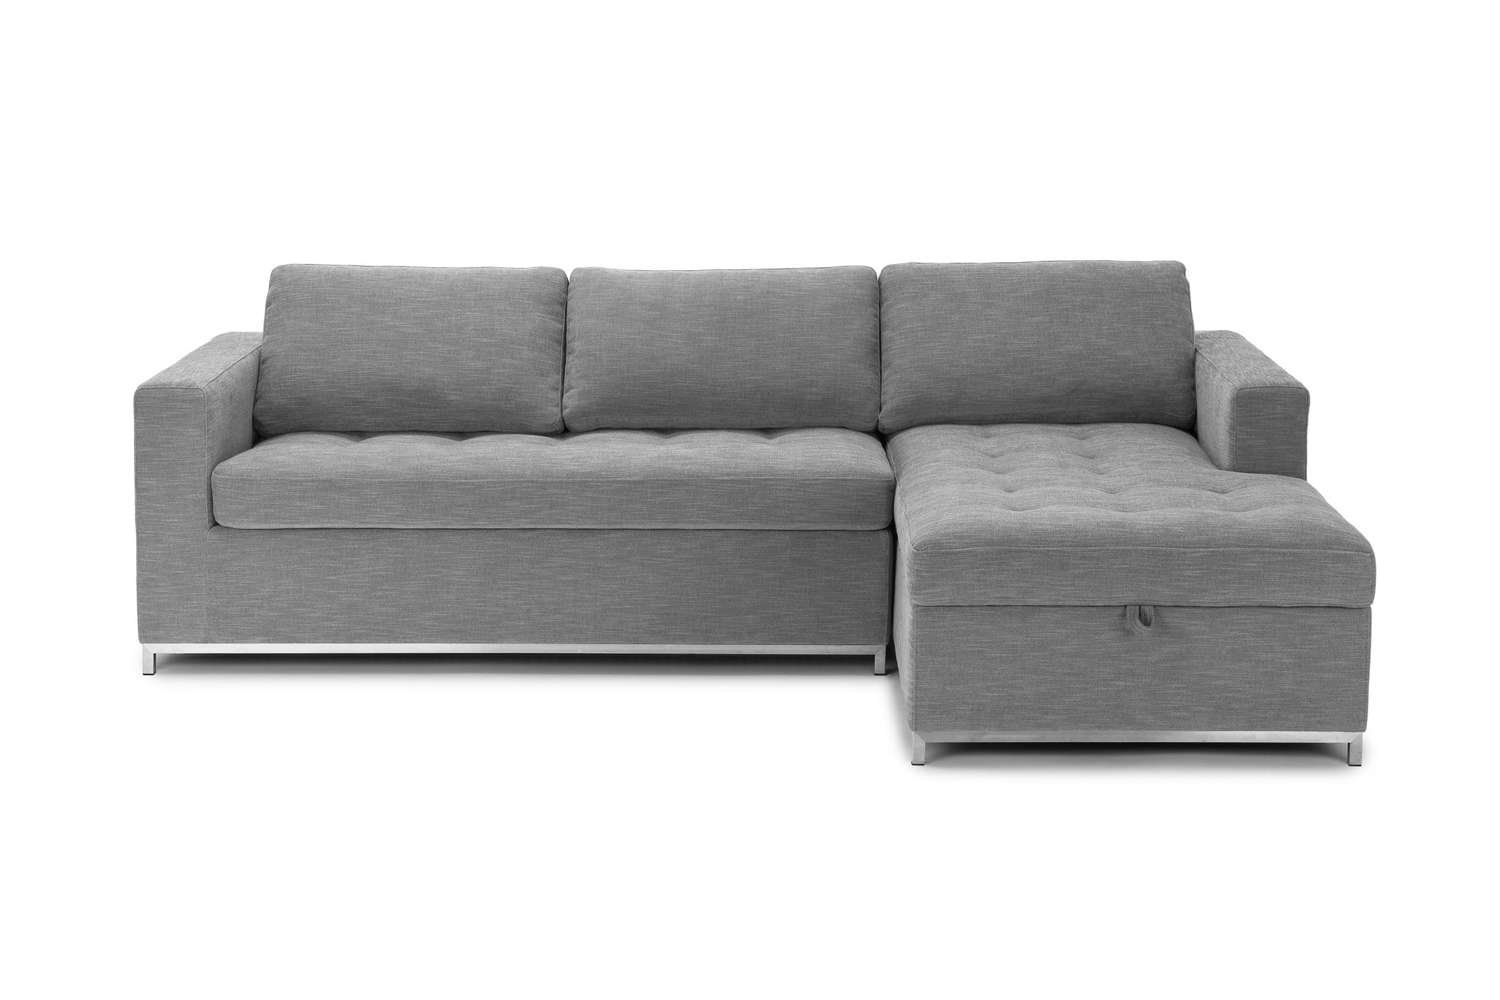 8 Favorites Surprisingly Attractive Sofas With Storage